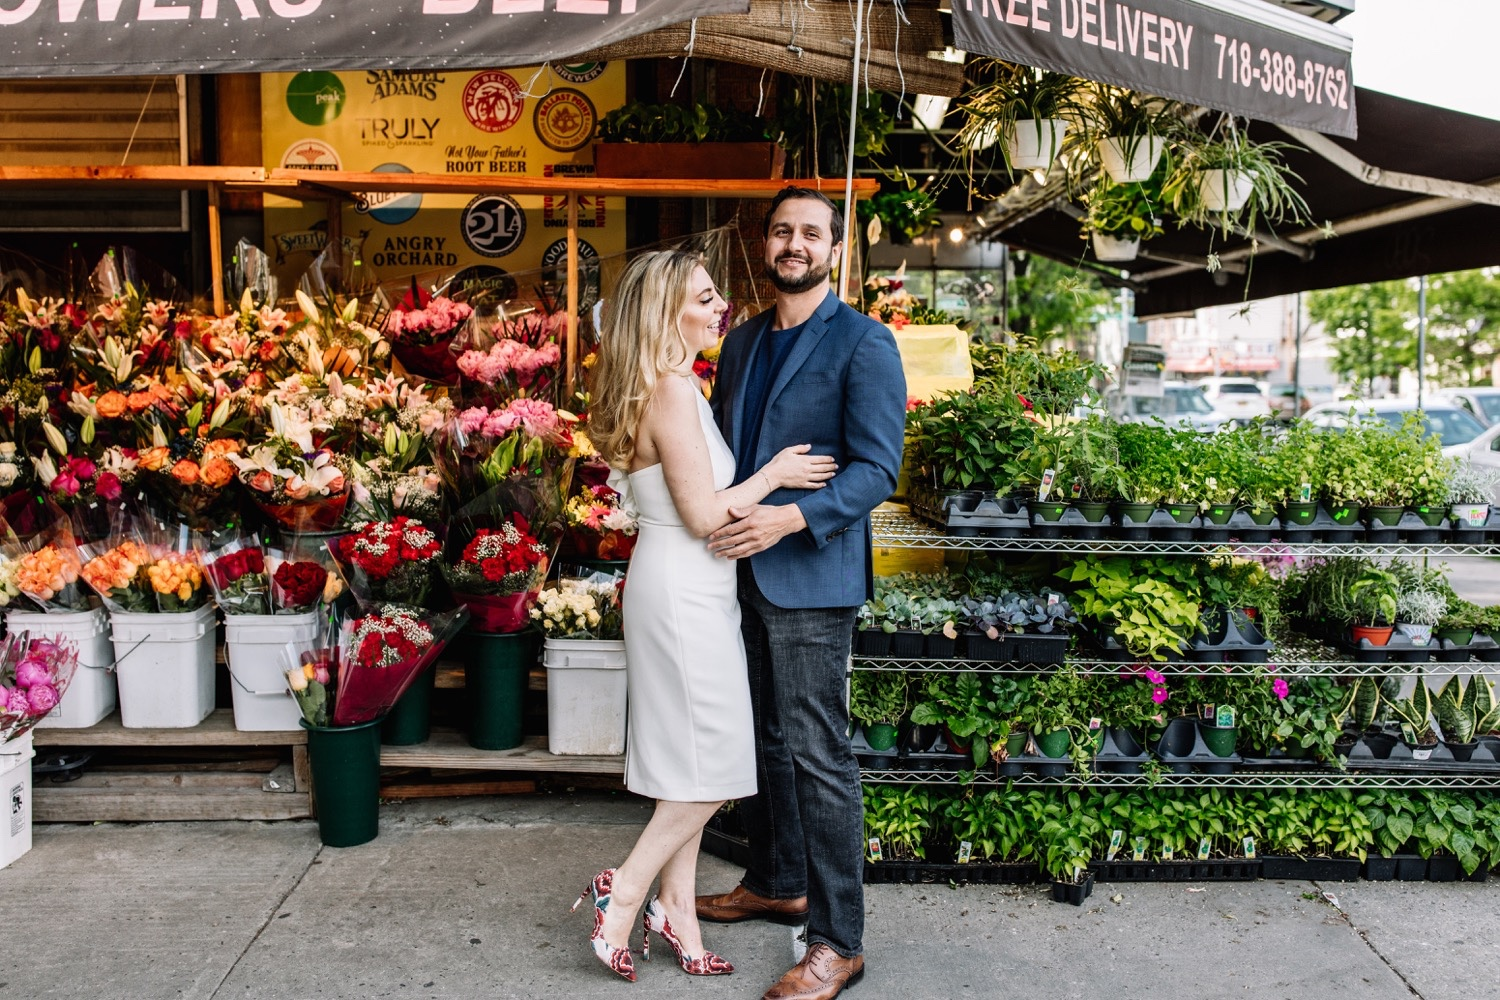 Whimsical Flower Shop Bodega Brooklyn Engagement Photos